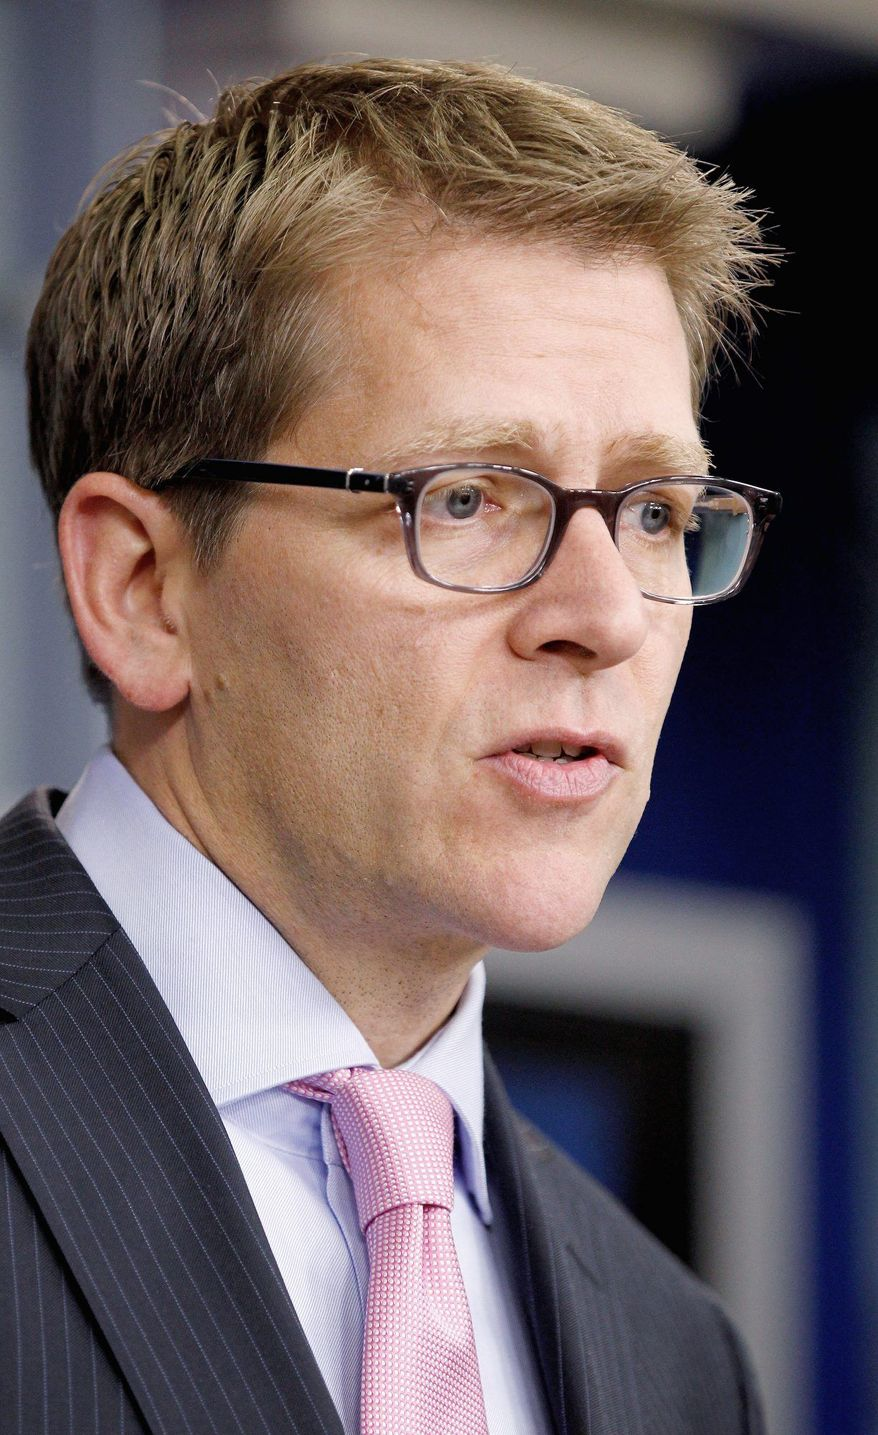 """The commitment that the president has to closing Guantanamo Bay is as firm today as it was during the campaign ... I think this is a process that faces obstacles that we're all aware of and we will continue to work through them."" - Jay Carney, White House press secretary. (AP Photo/Haraz N. Ghanbari)"